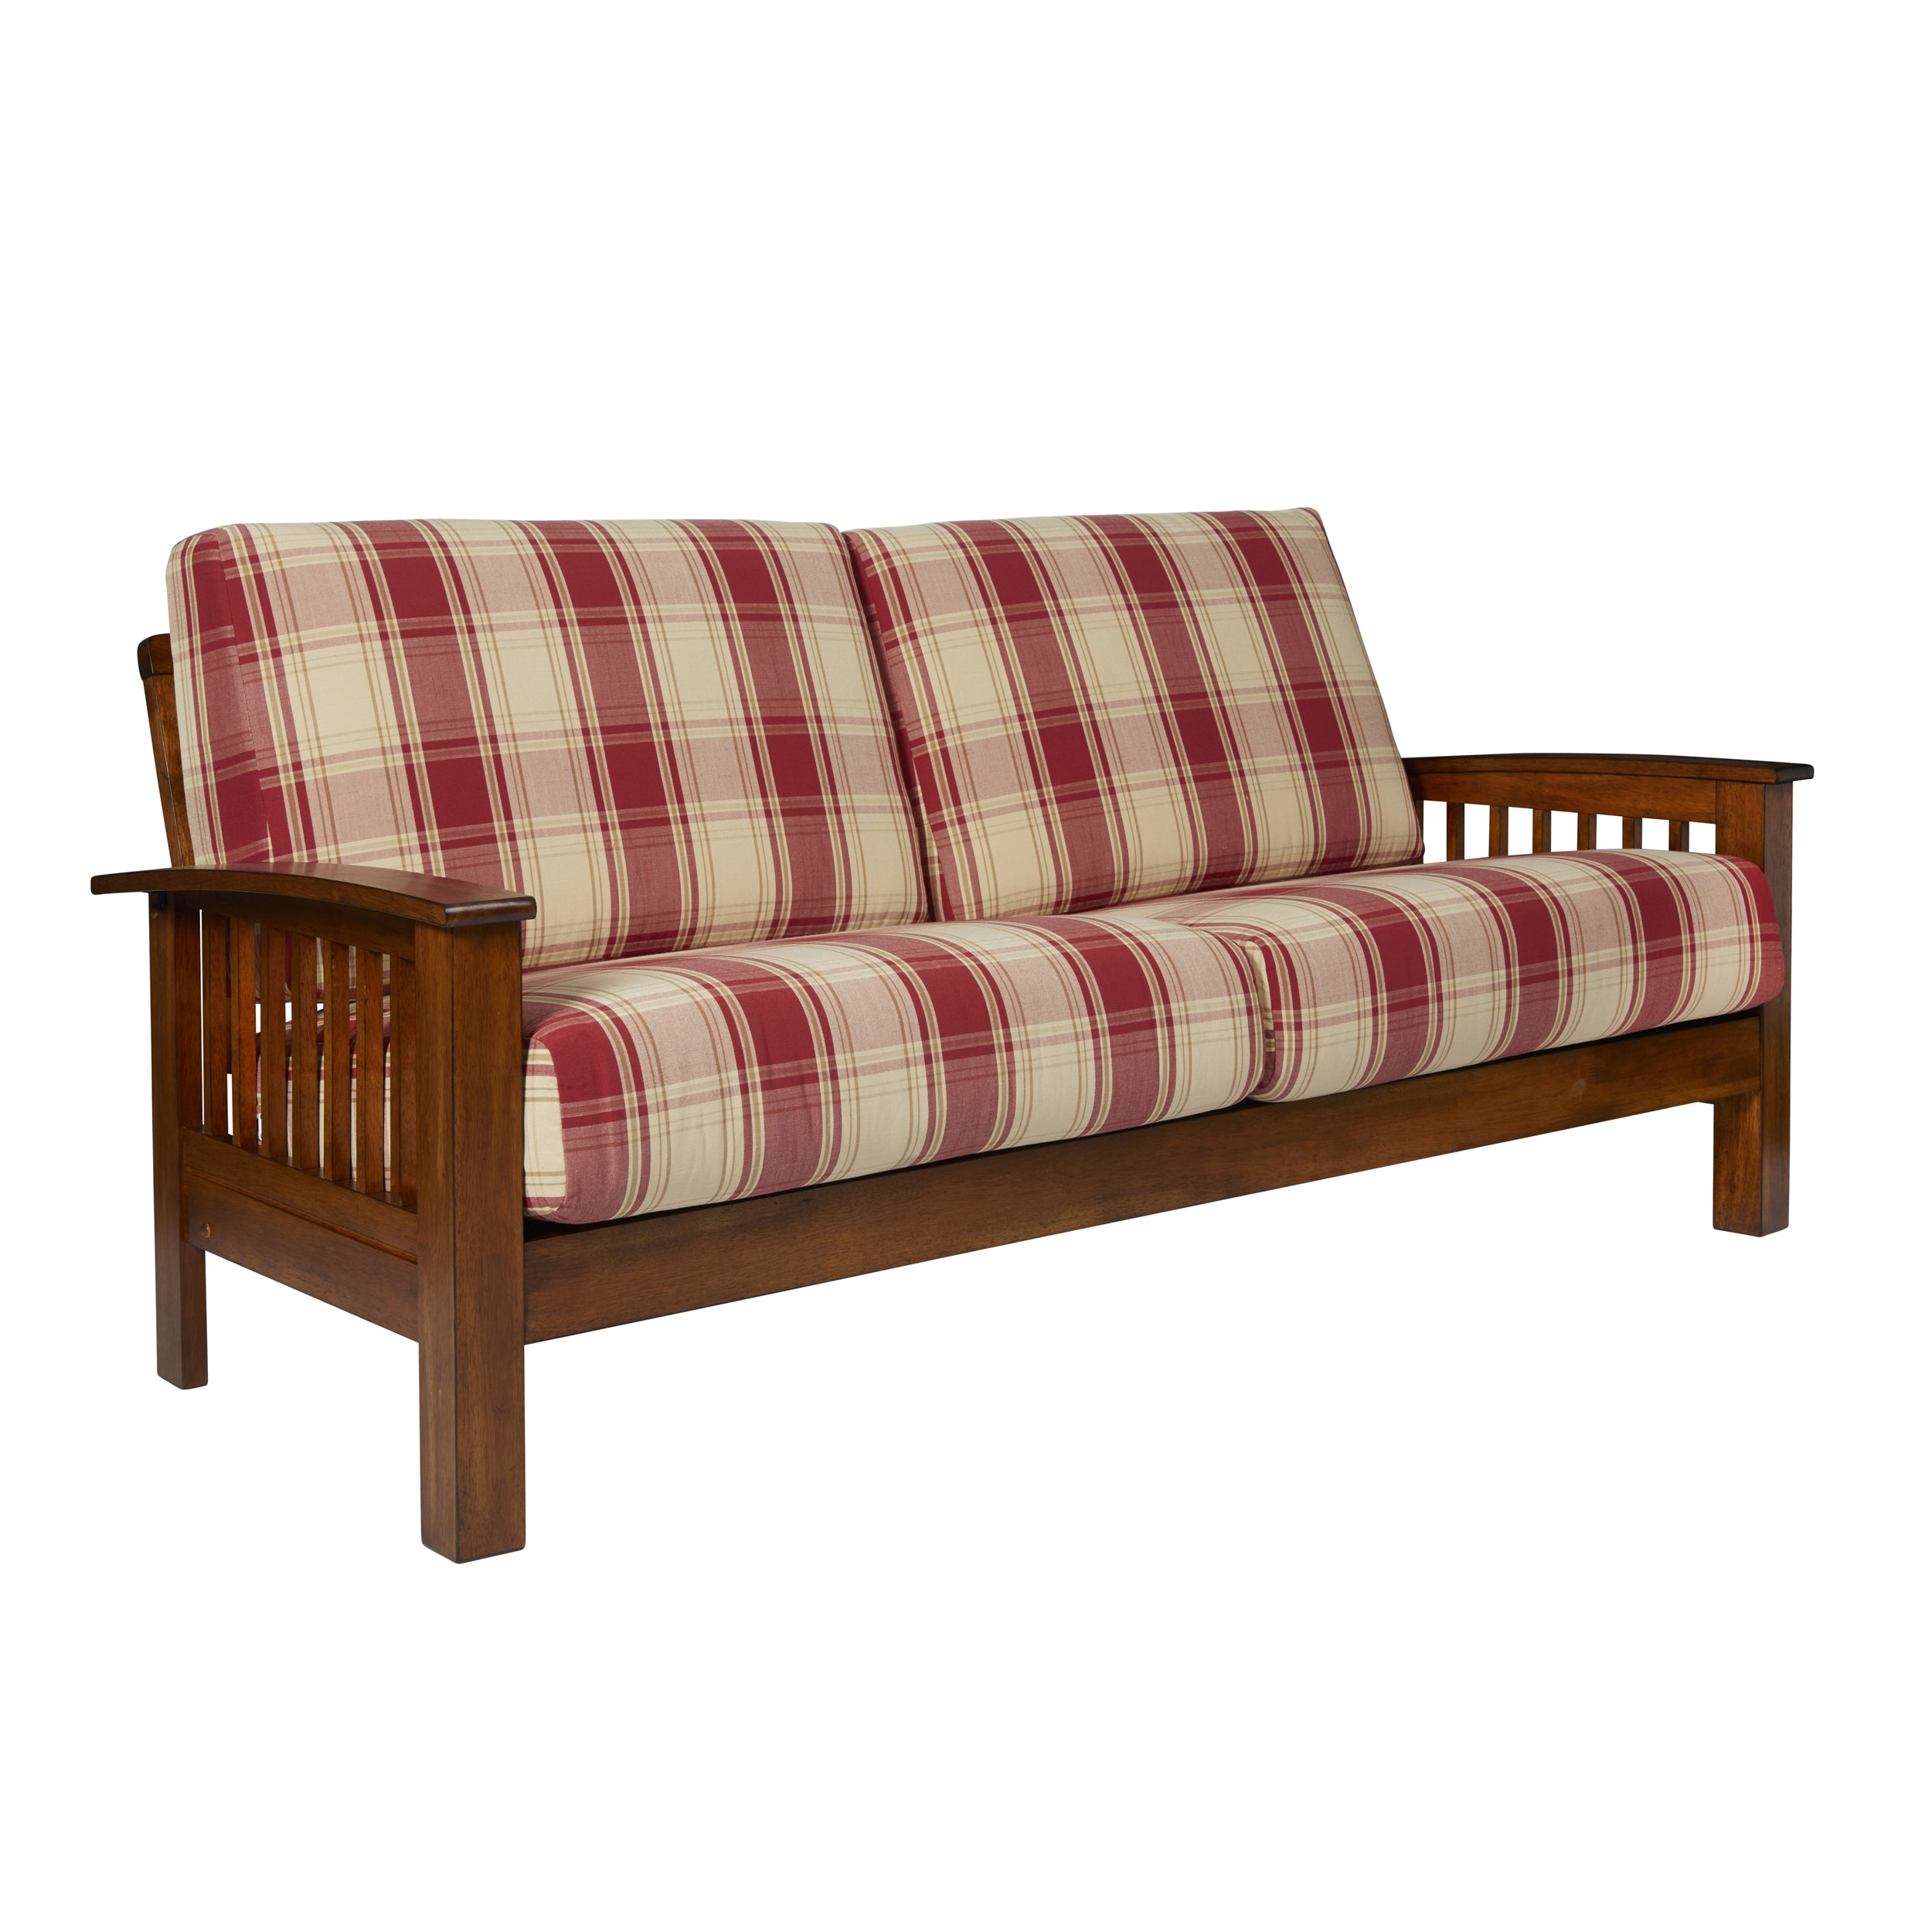 Shop Handy Living Omaha Red Plaid Mission Style Sofa with Exposed ...